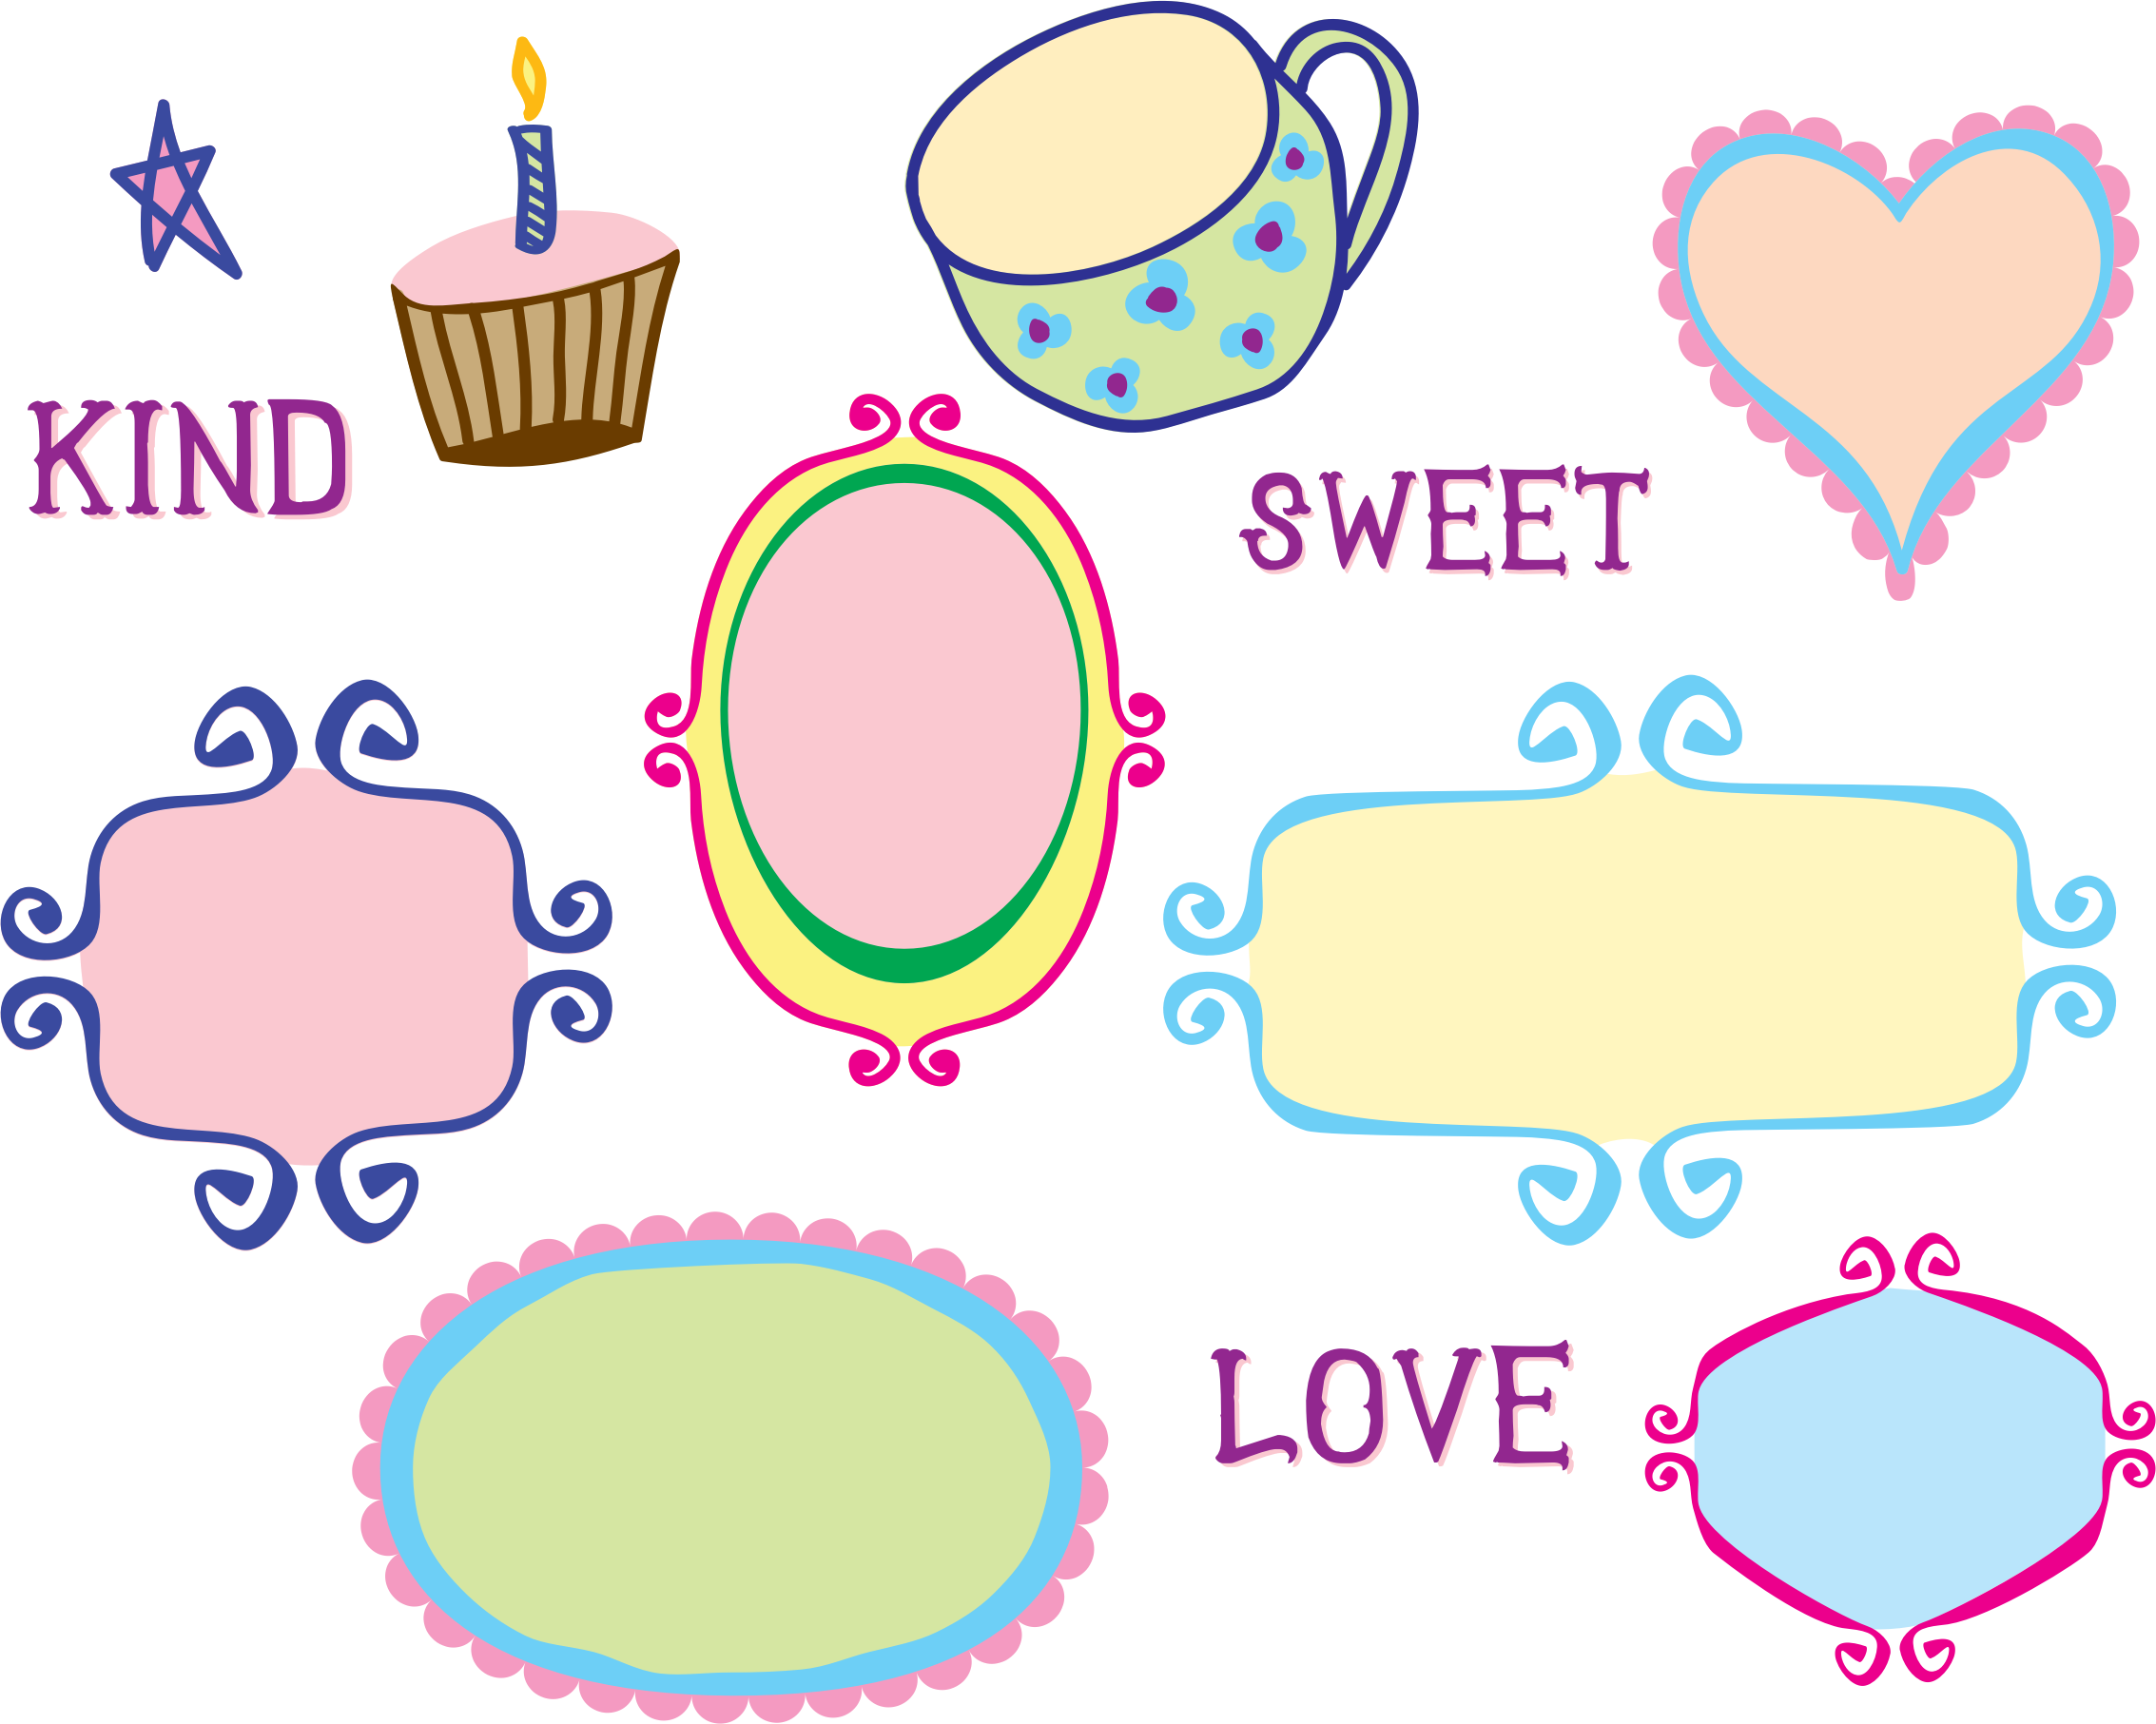 Doodle frames png. Kitschy frame borders icons